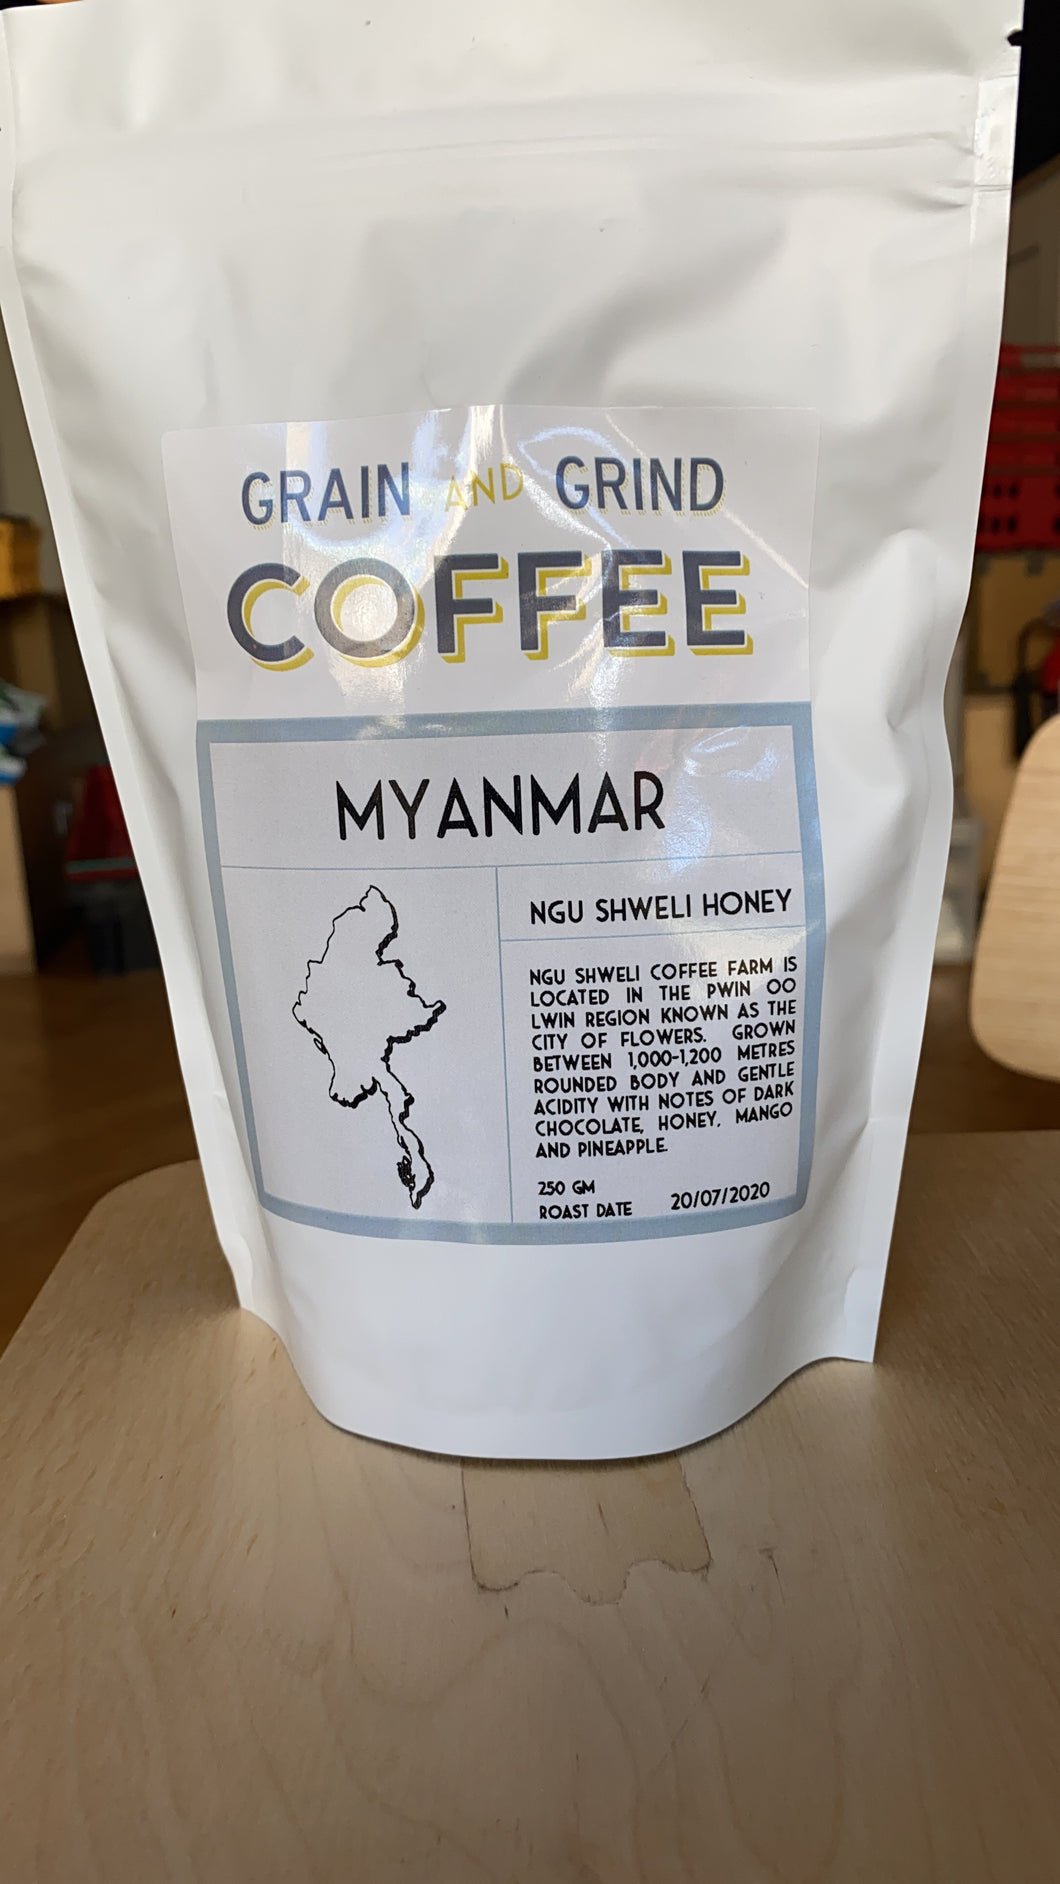 Myanmar Ngu Shweli Honey - Grain and Grind